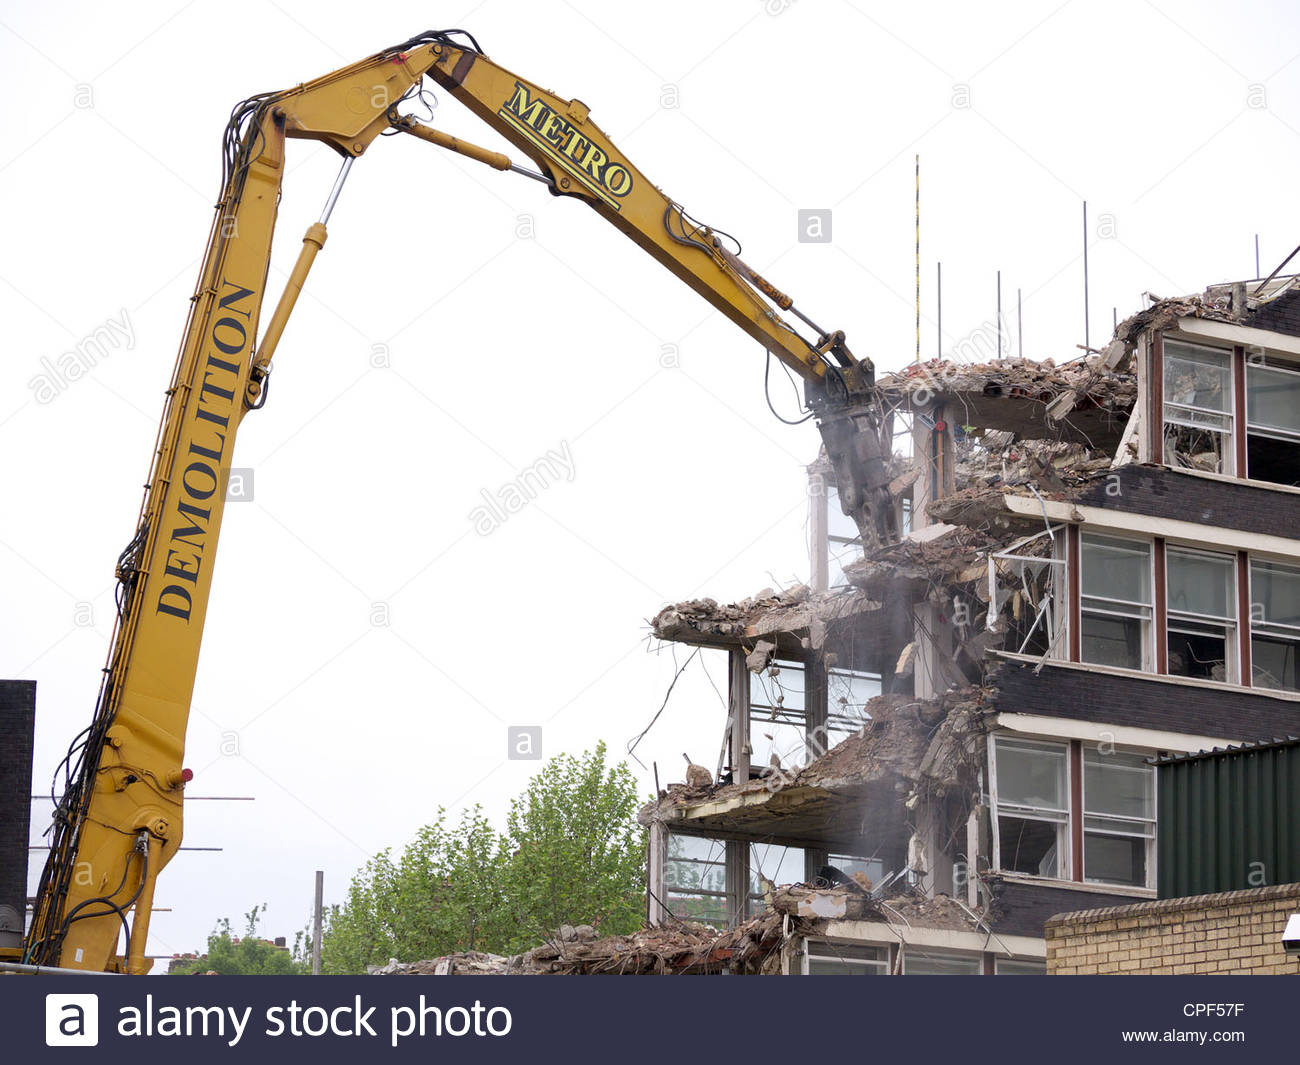 Demolition of an old building by heavy machinery - Stock Image